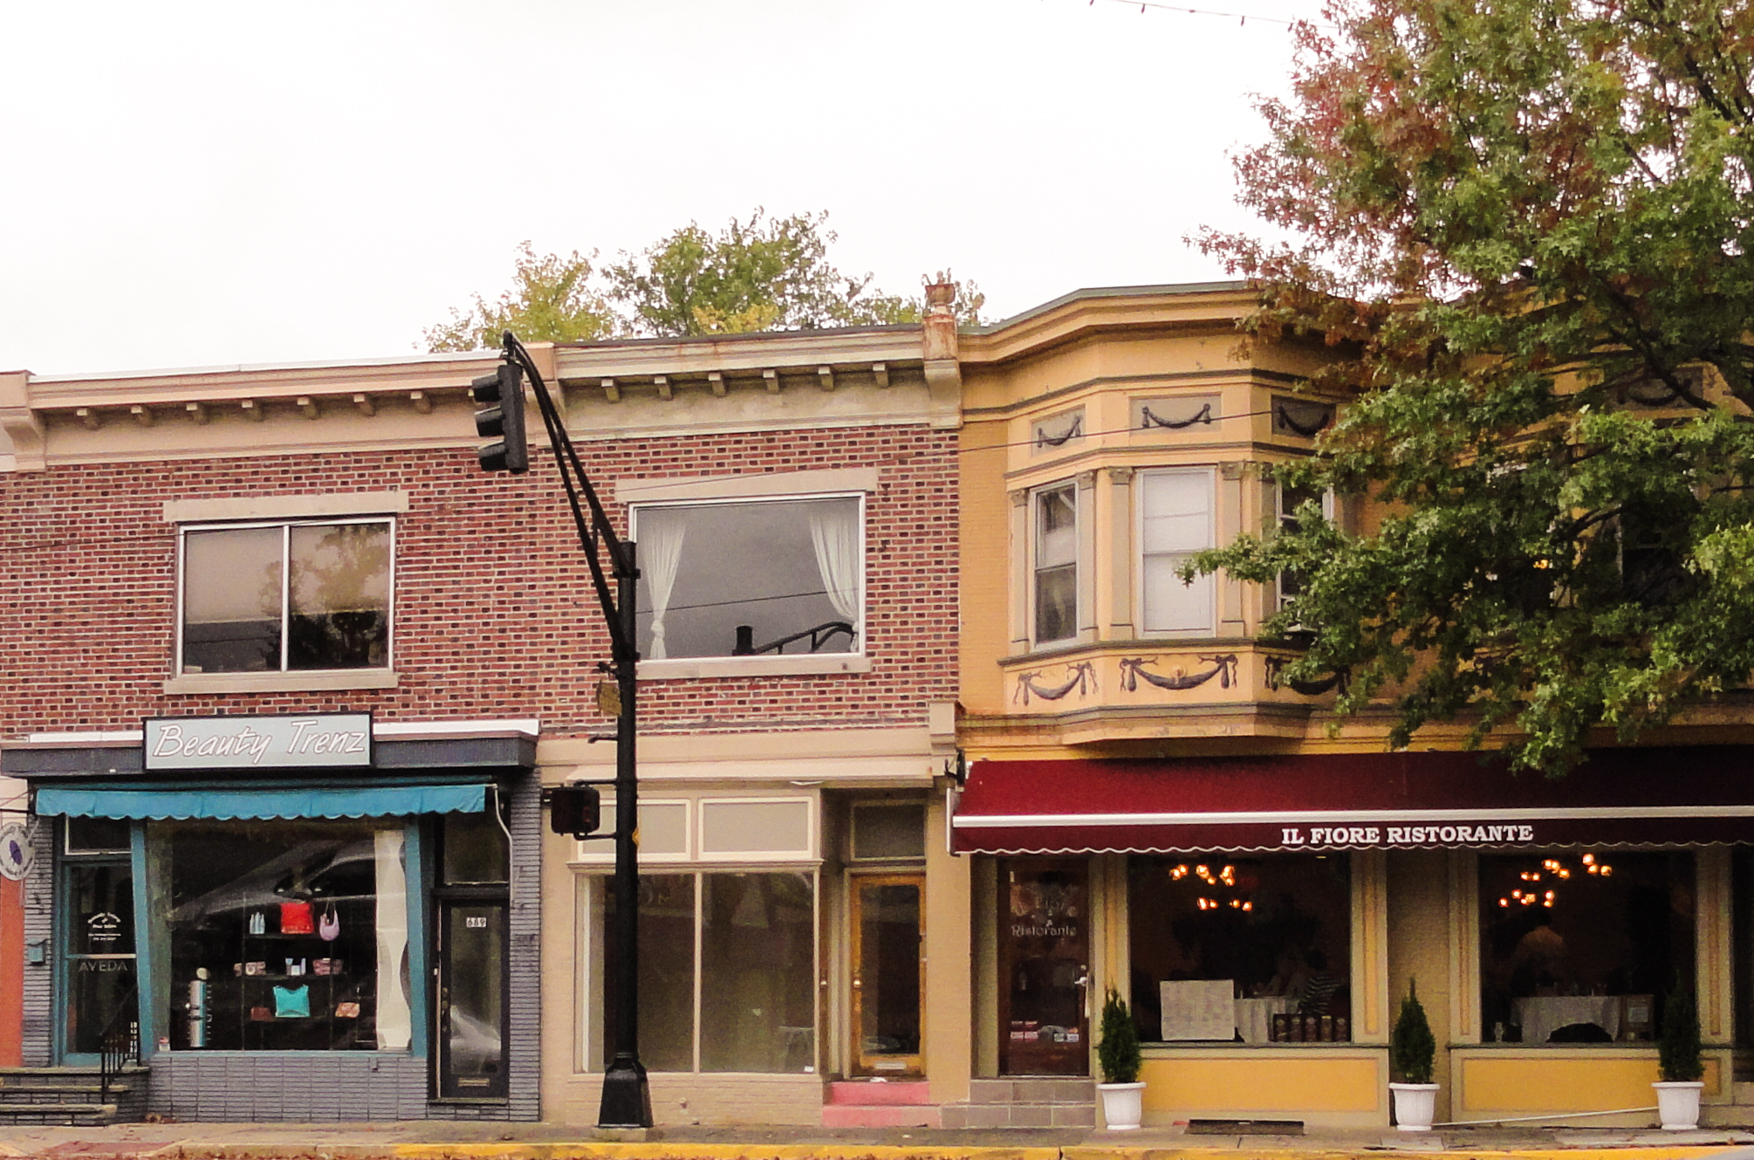 up next in 2017 collingswood lays infrastructure groundwork in local